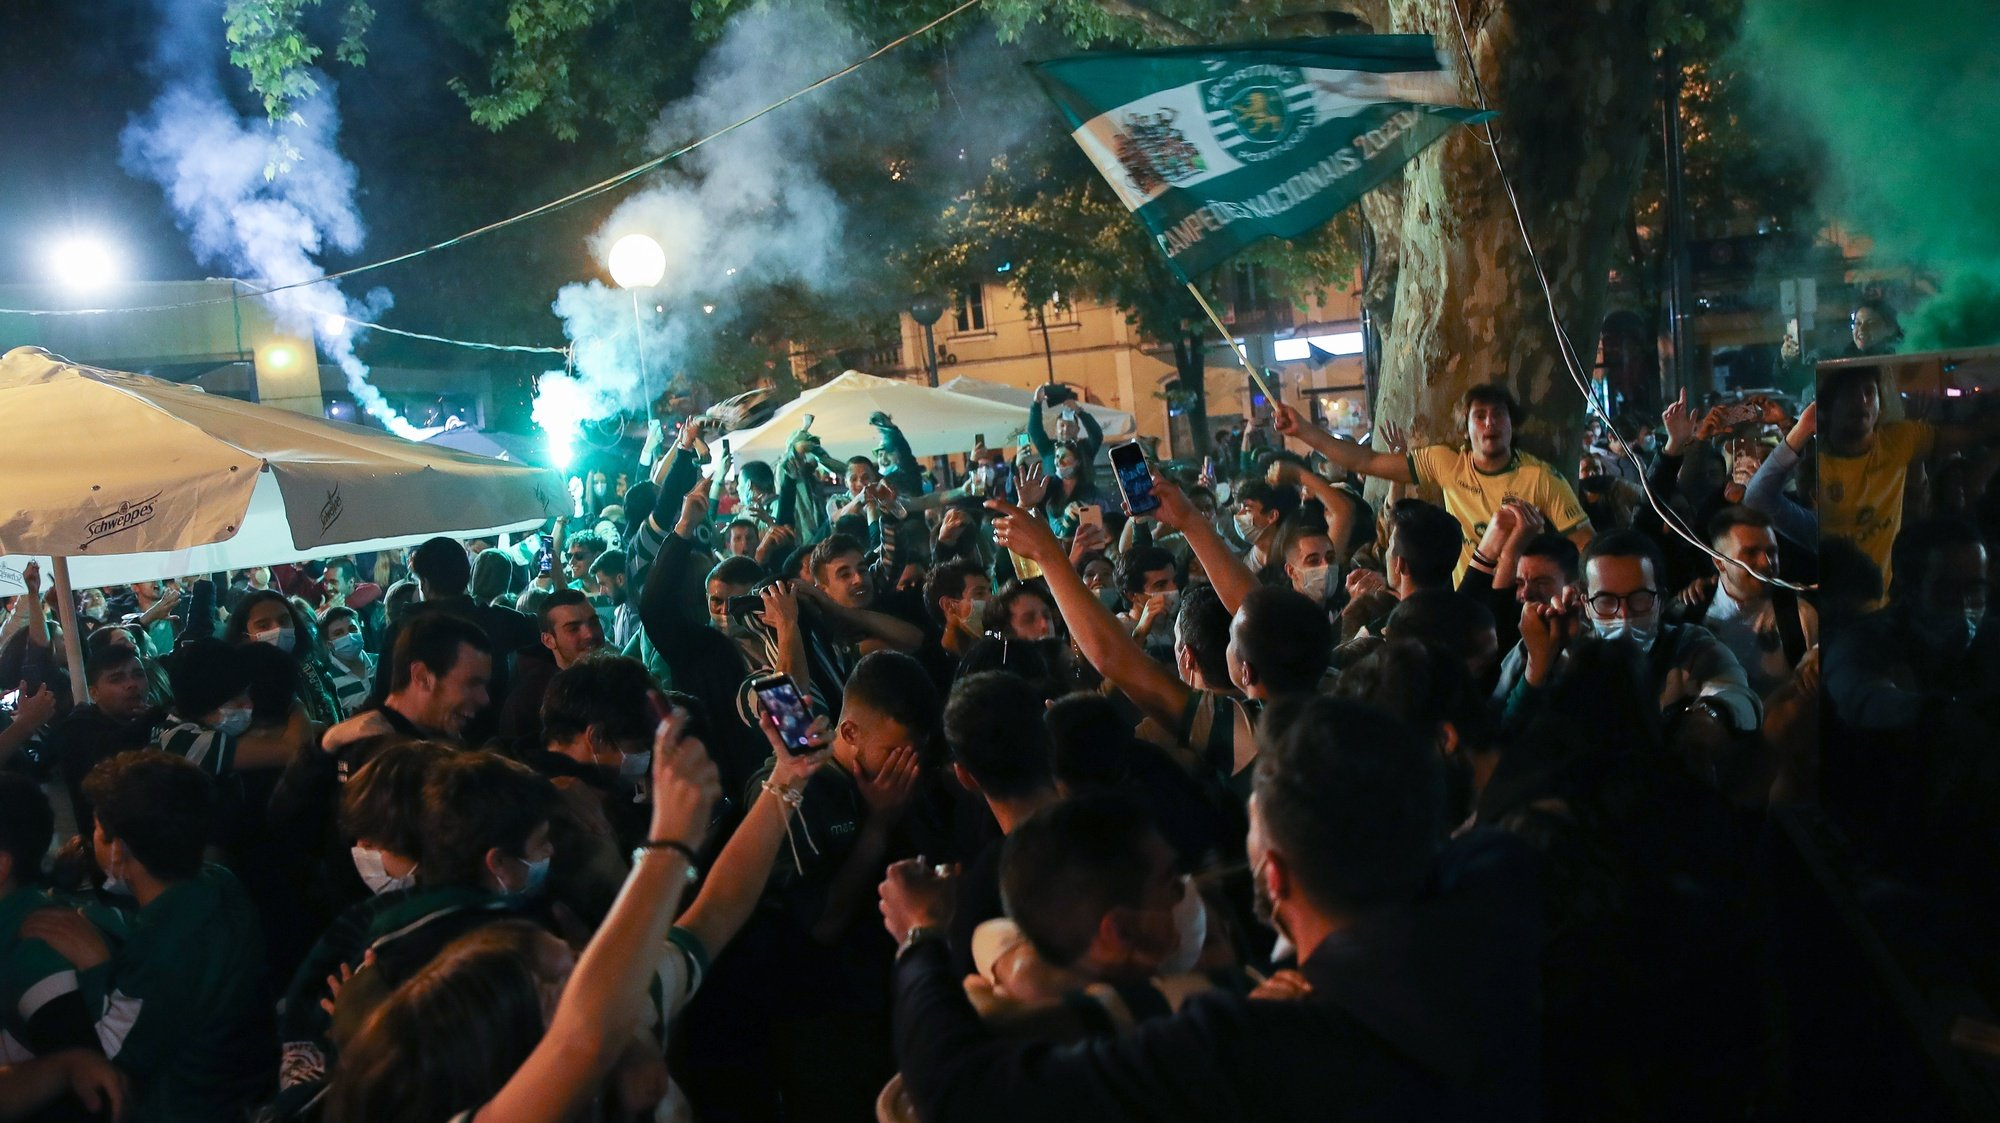 epa09192604 Sporting supporters celebrate the First League Soccer title at Republica square, in Coimbra, Portugal, 11 May 2021. Sporting of Lisbon defeated Boavista in their Portuguese First League soccer match conquering the First League trophy of the season 2020/2021, a trophy the team has been chasing since the season 2001/2002.  EPA/PAULO NOVAIS